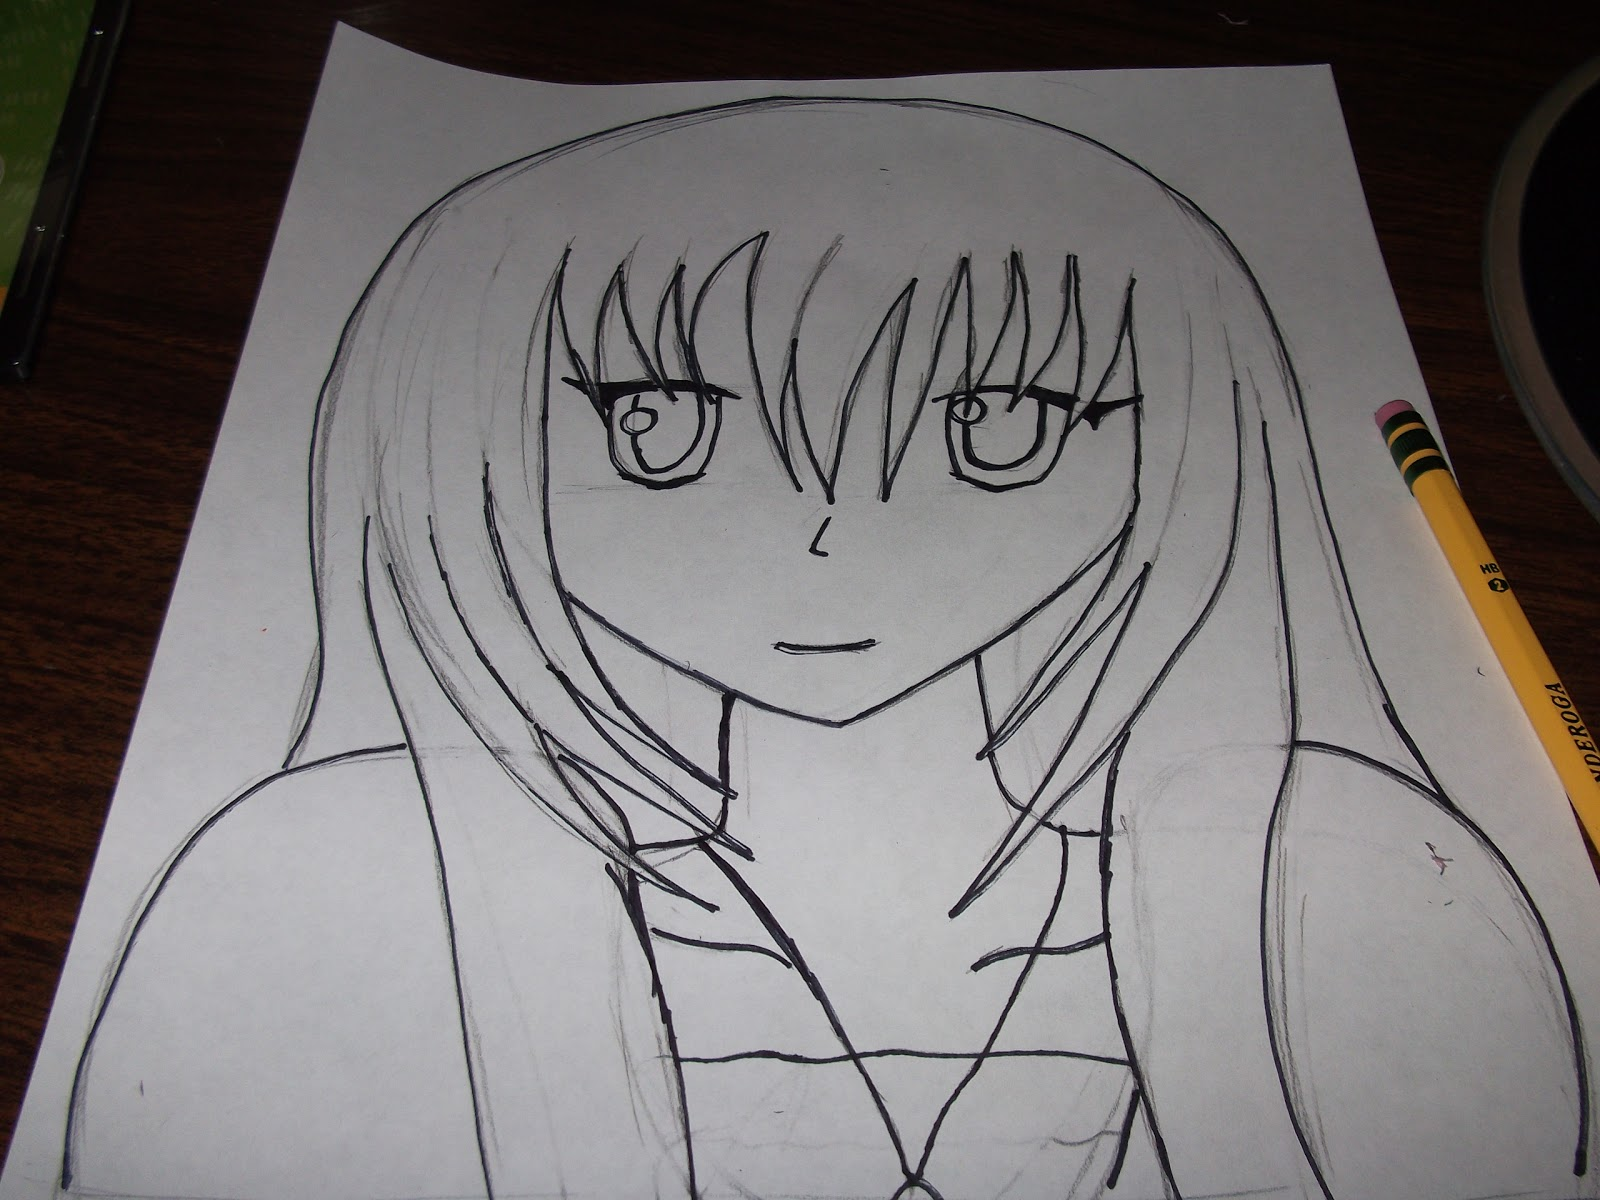 Cool Drawings Of Anime People Step 4: outline your person in